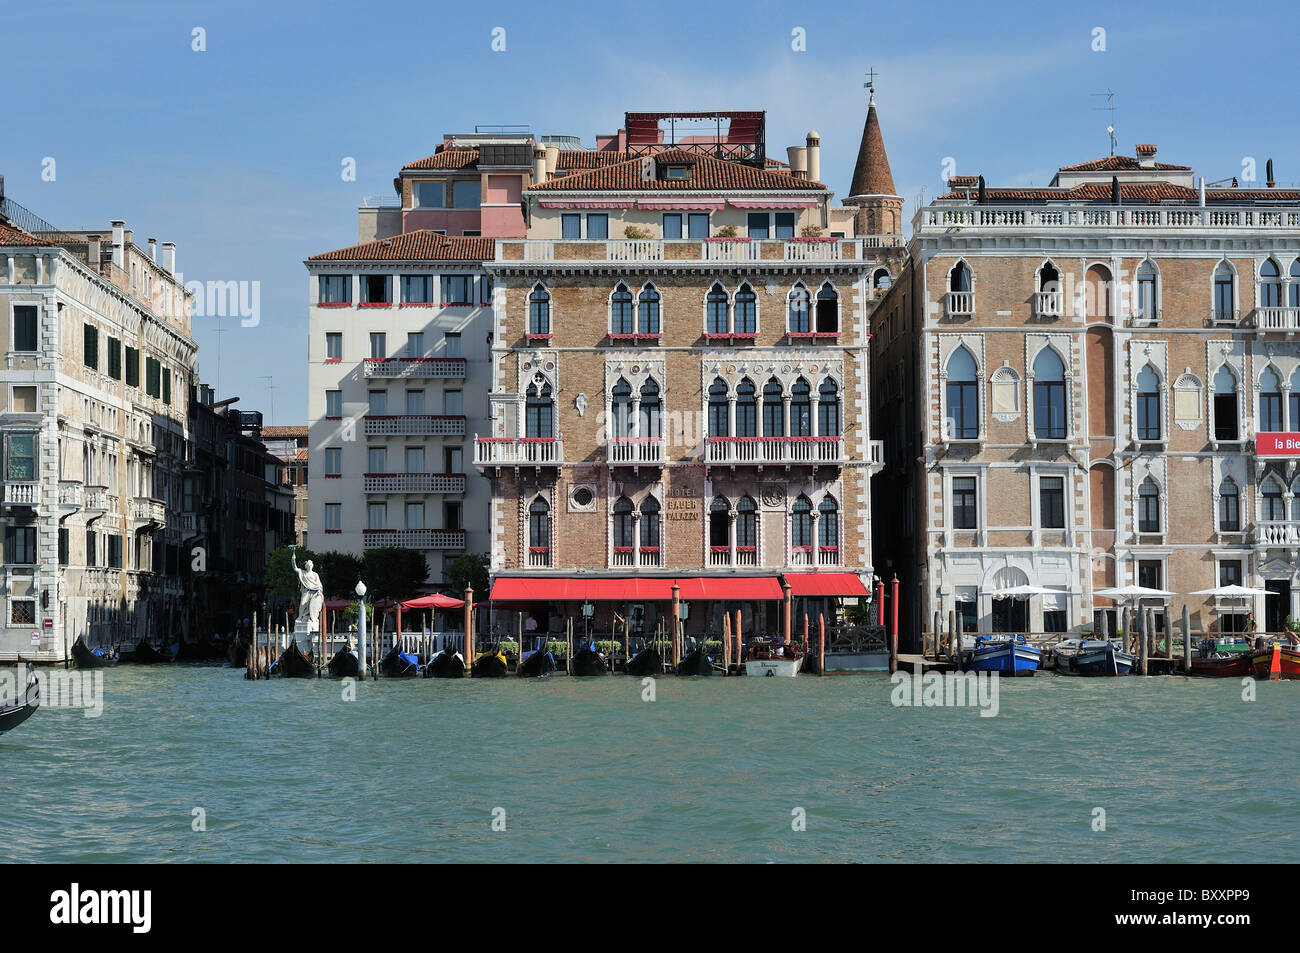 venedig italien hotel bauer grunwald palazzo aussicht auf den canal grande stockfoto bild. Black Bedroom Furniture Sets. Home Design Ideas